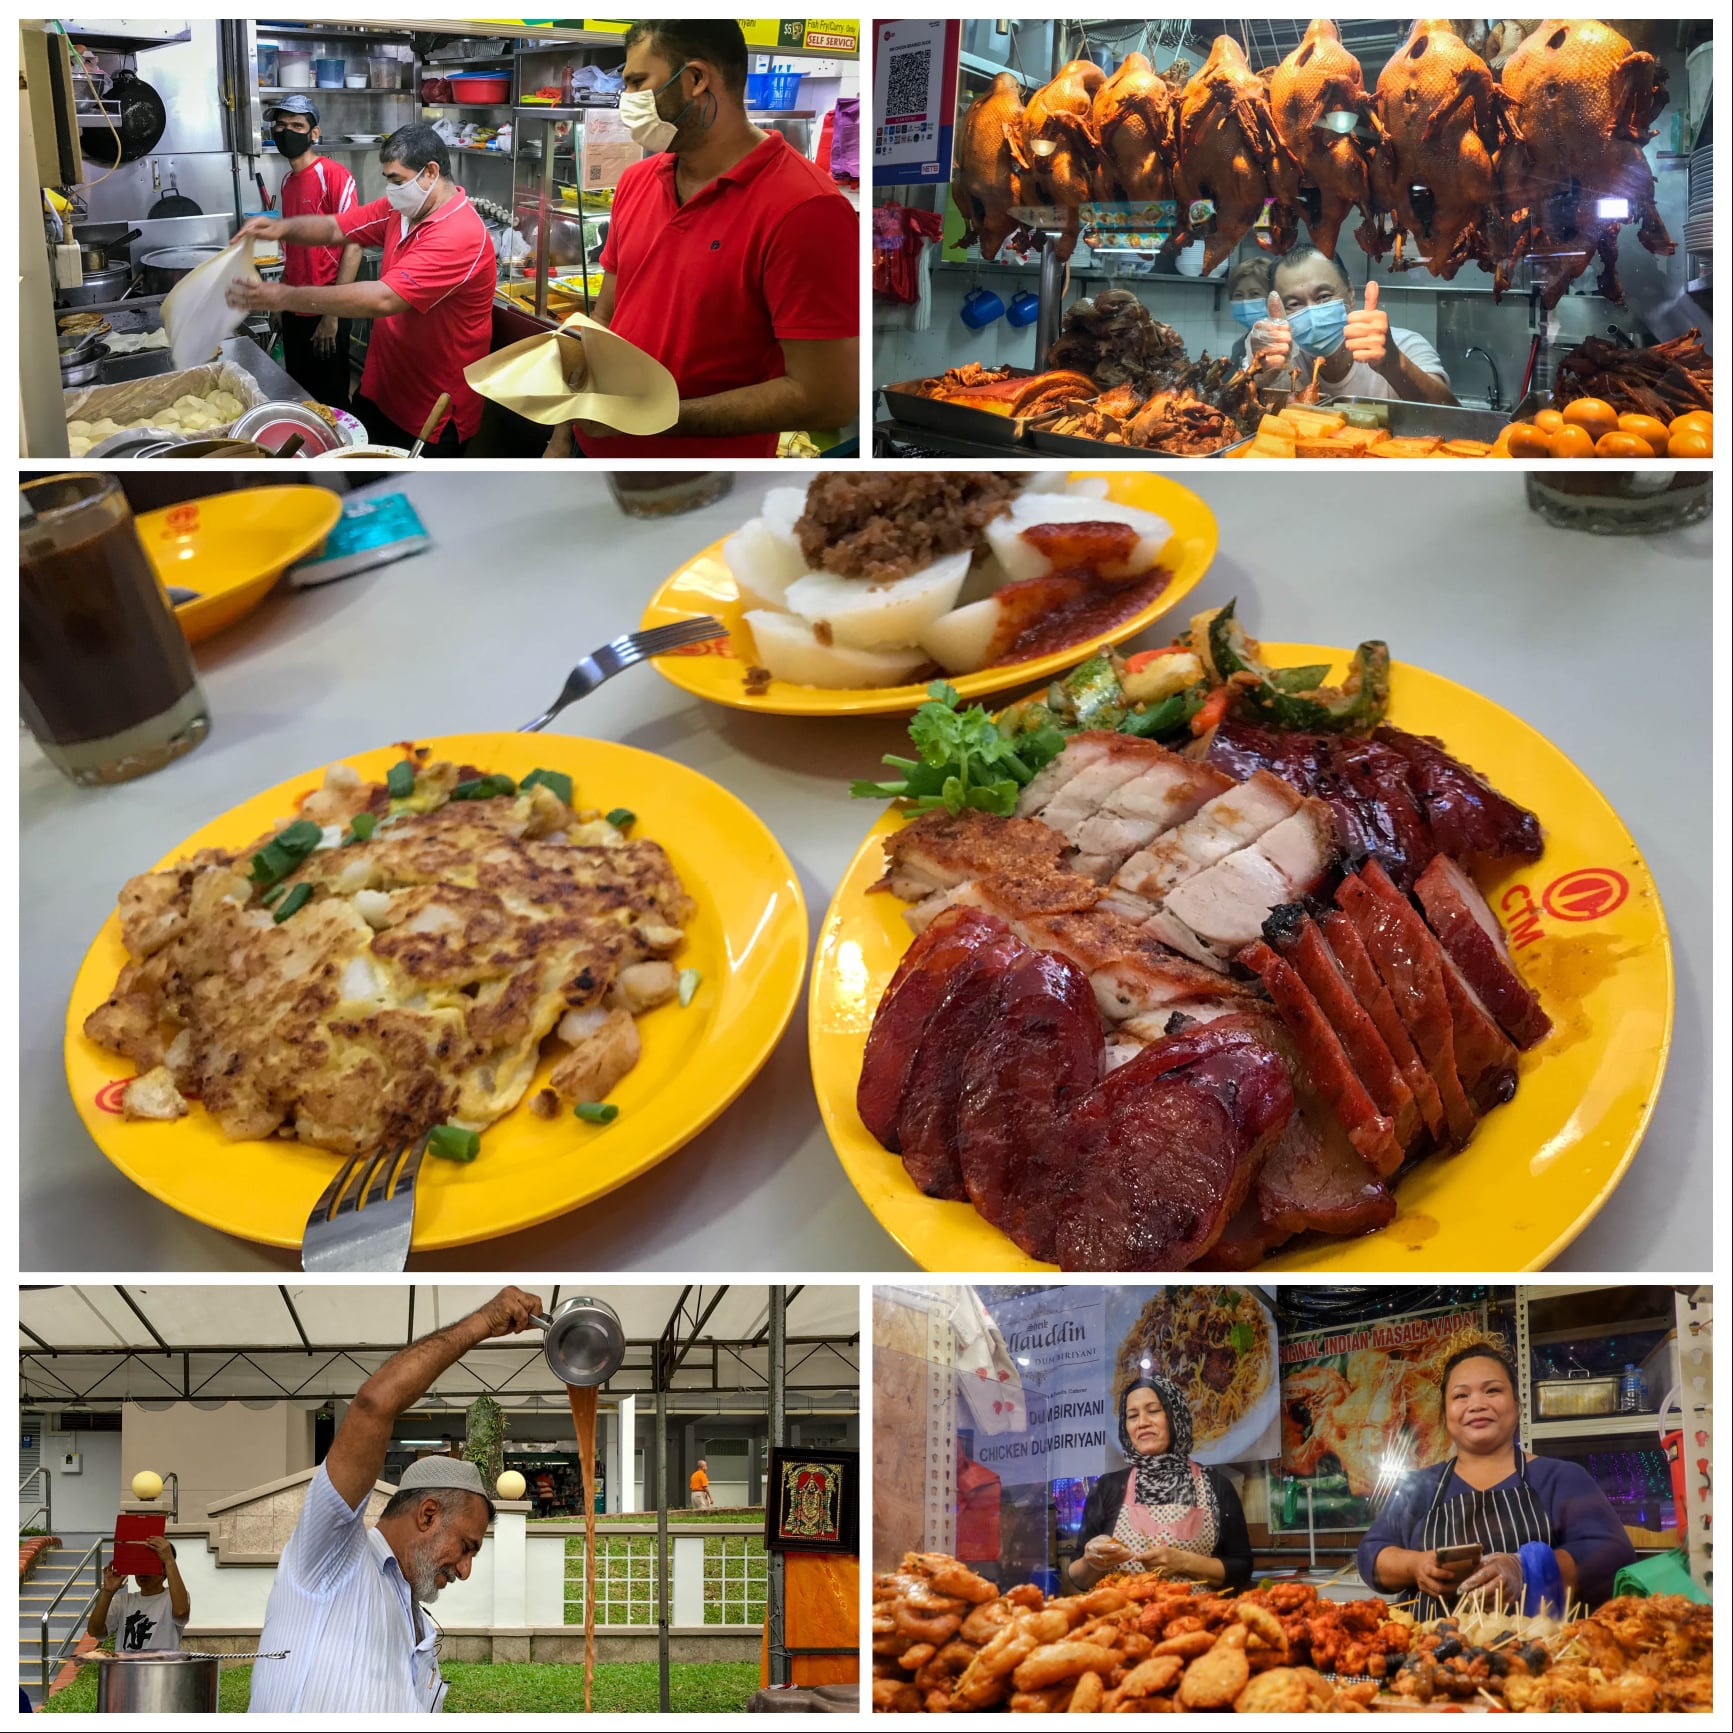 Singapore's hawker culture has been inscribed on the UNESCO Representative List of the Intangible Cultural Heritage of Humanity. Photo courtesy: Facebook/Lee Hsien Loong